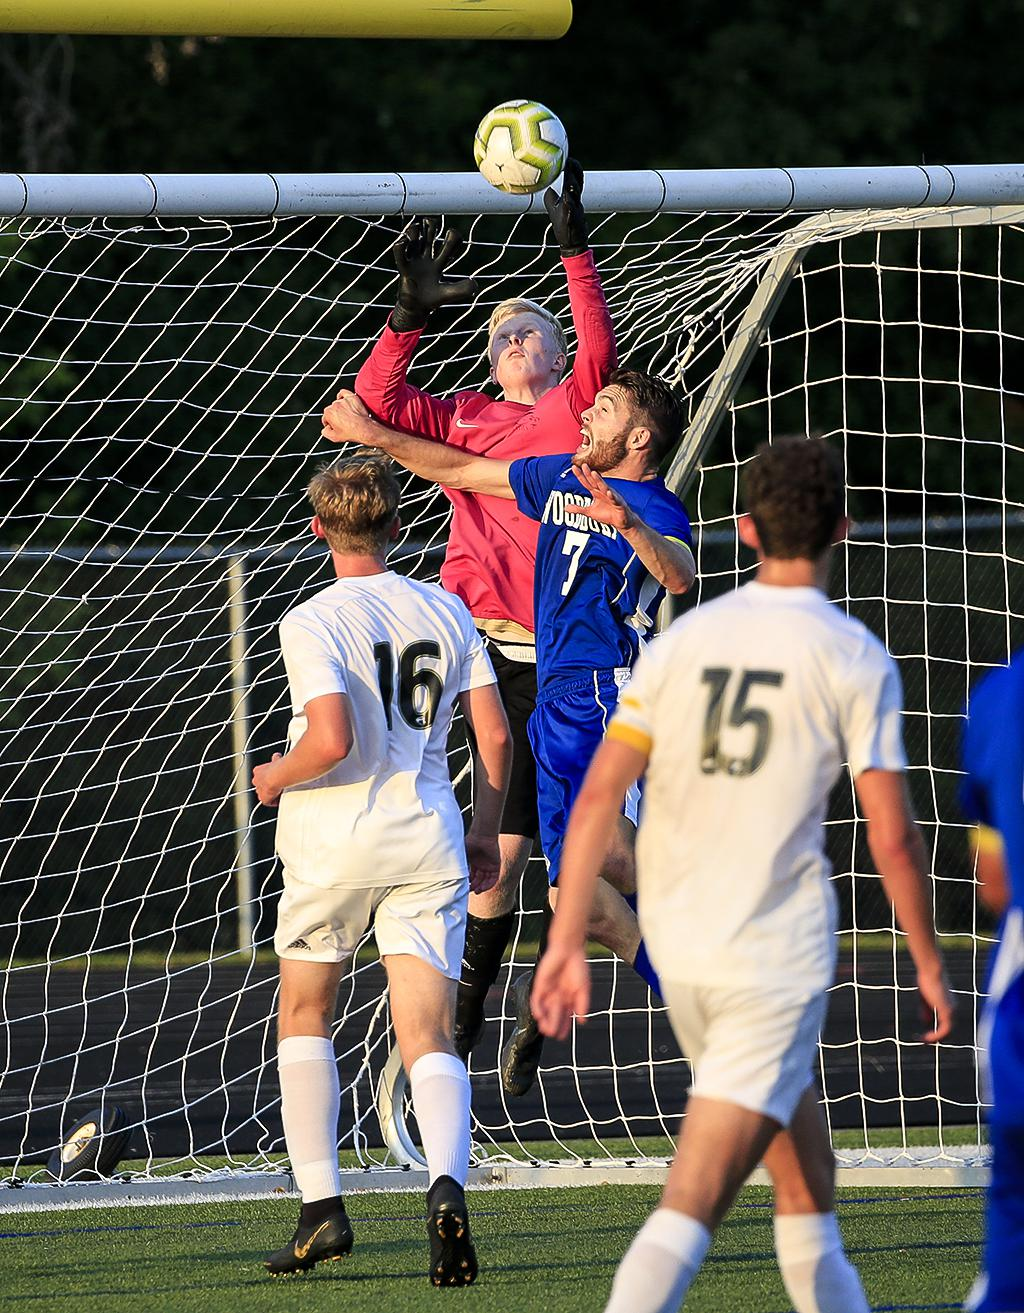 East Ridge goalkeeper Nick Wagner sends the ball away from the net late in the second half. Wagner's seven saves helped East Ridge beat Woodbury 3-1. Photo by Cheryl A. Myers, SportsEngine